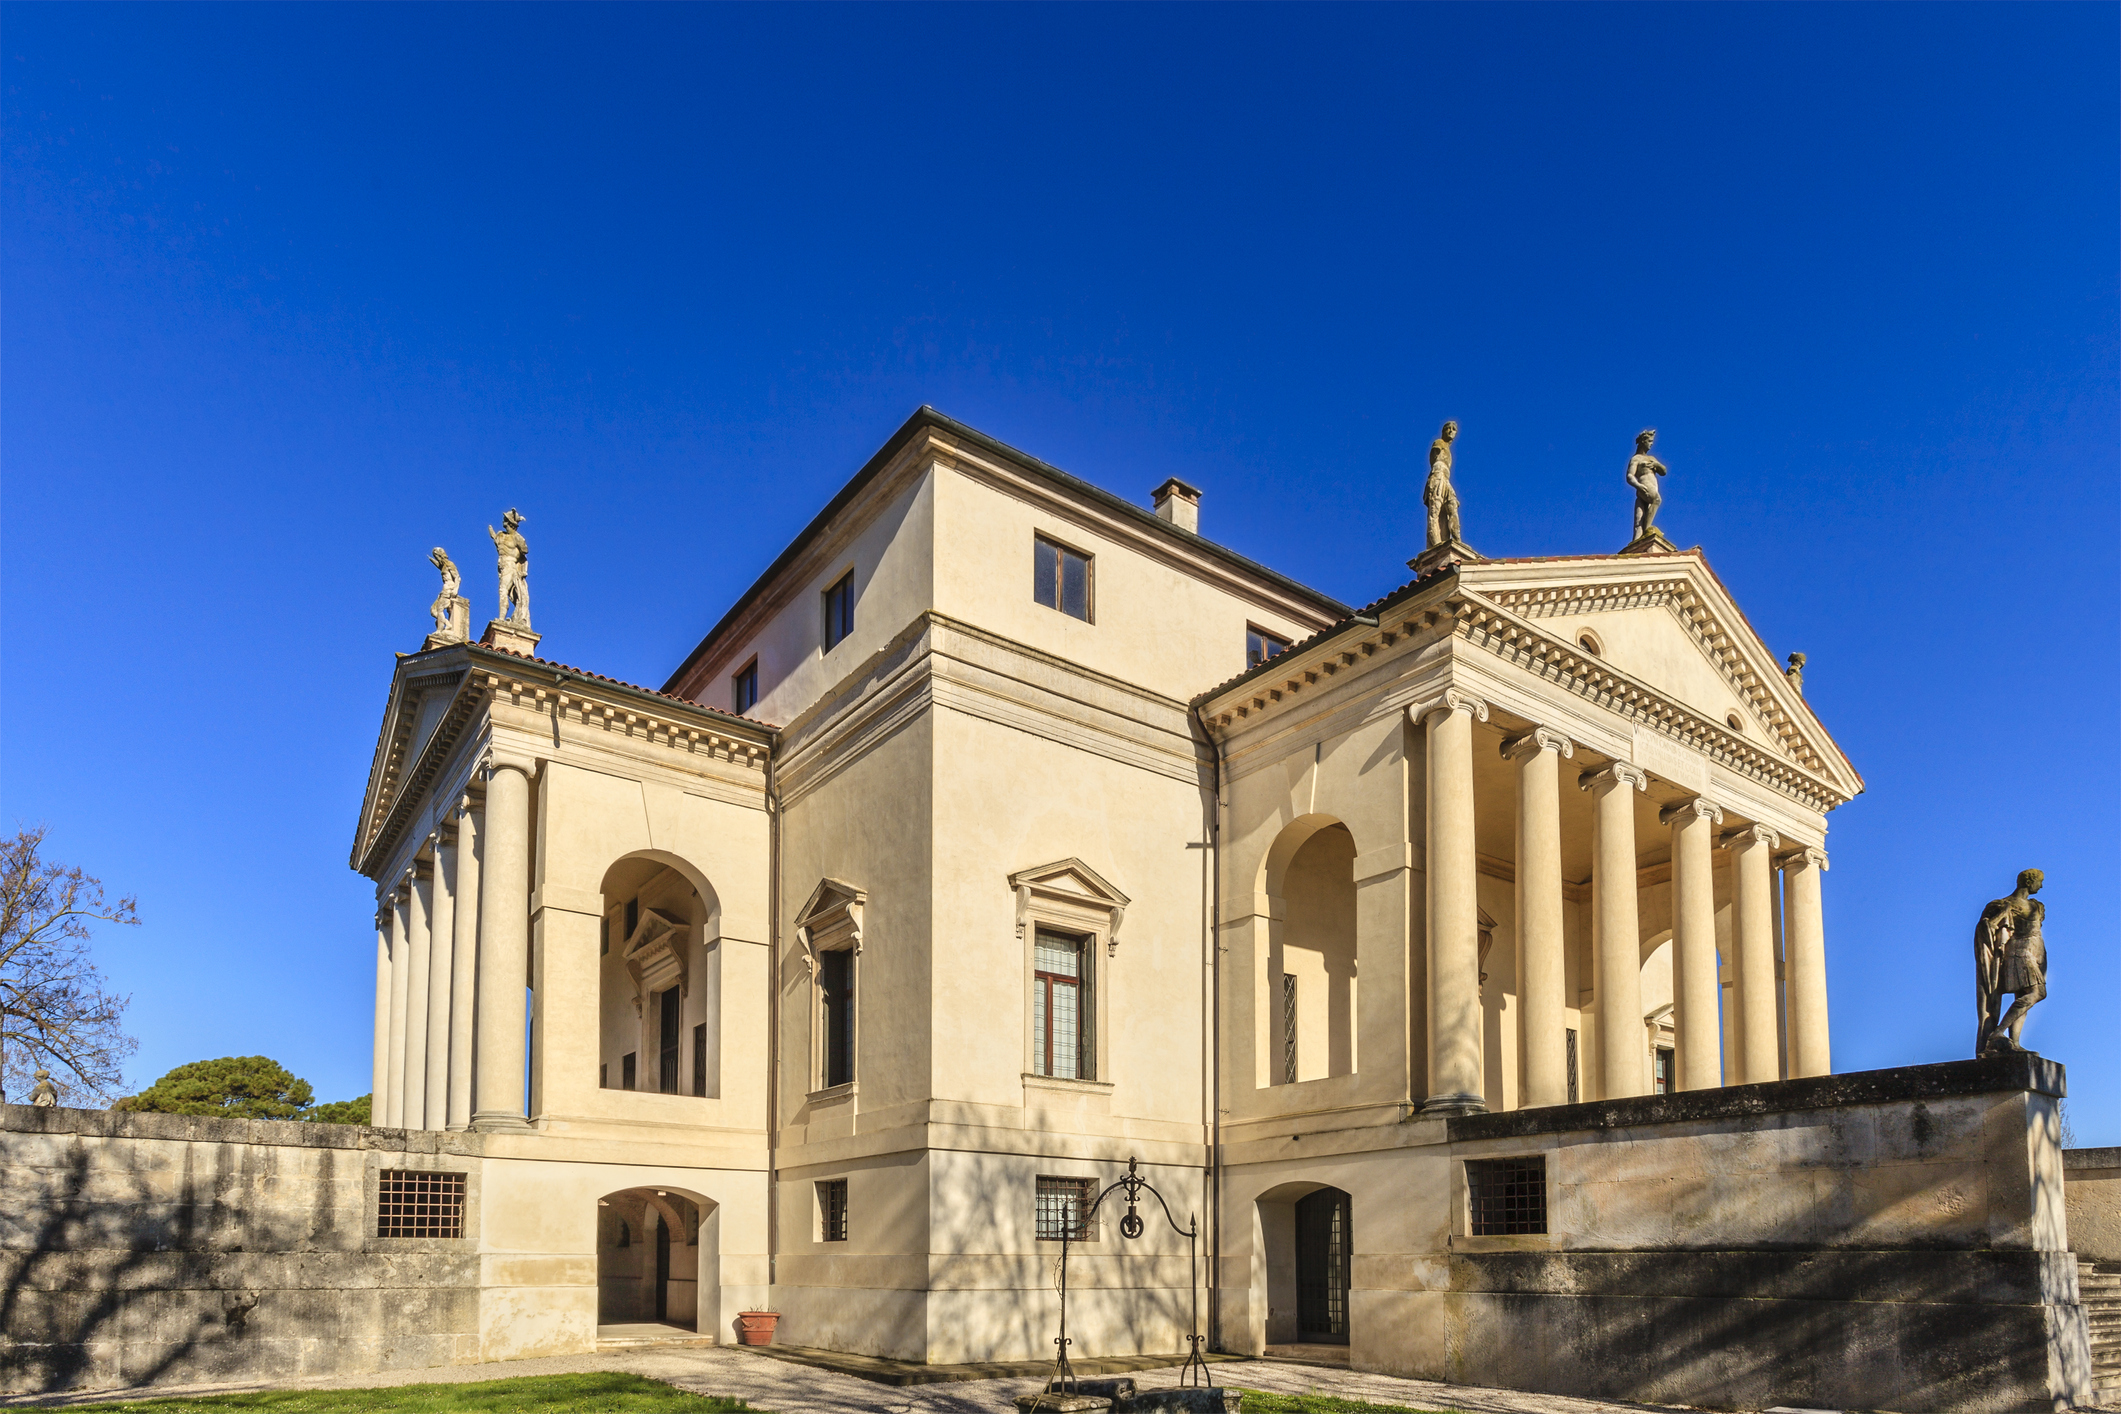 The Palladian villas of the Veneto